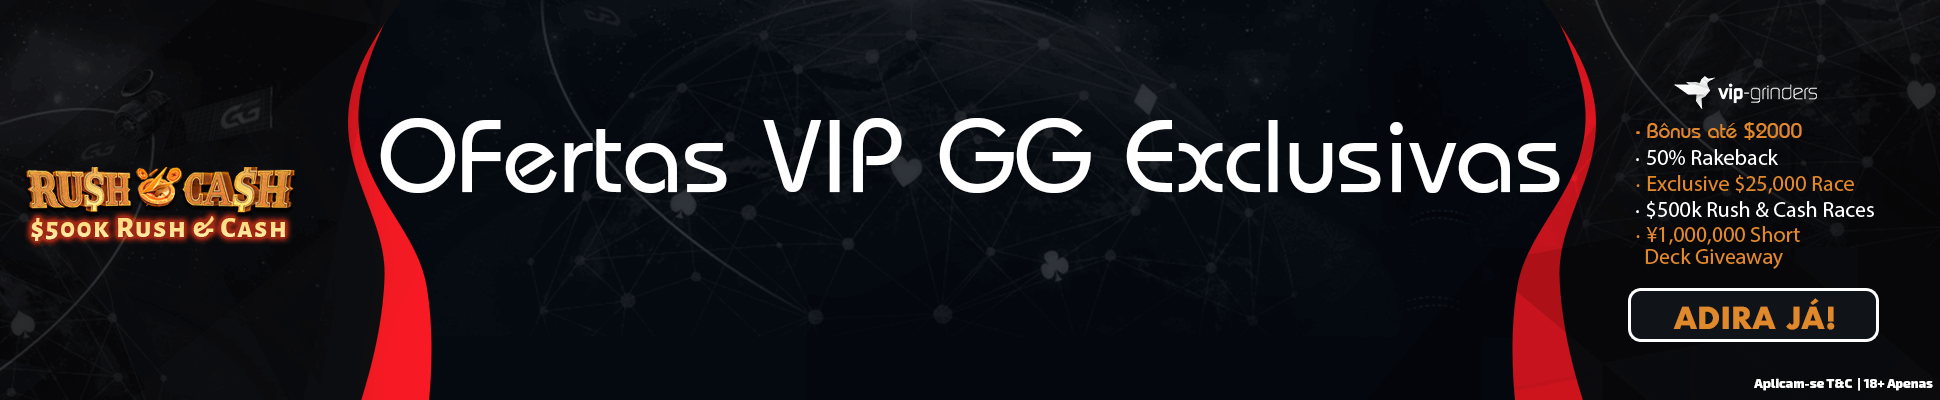 exclusive-ggvip-ggnetwork-vip-deals-1940x400-november